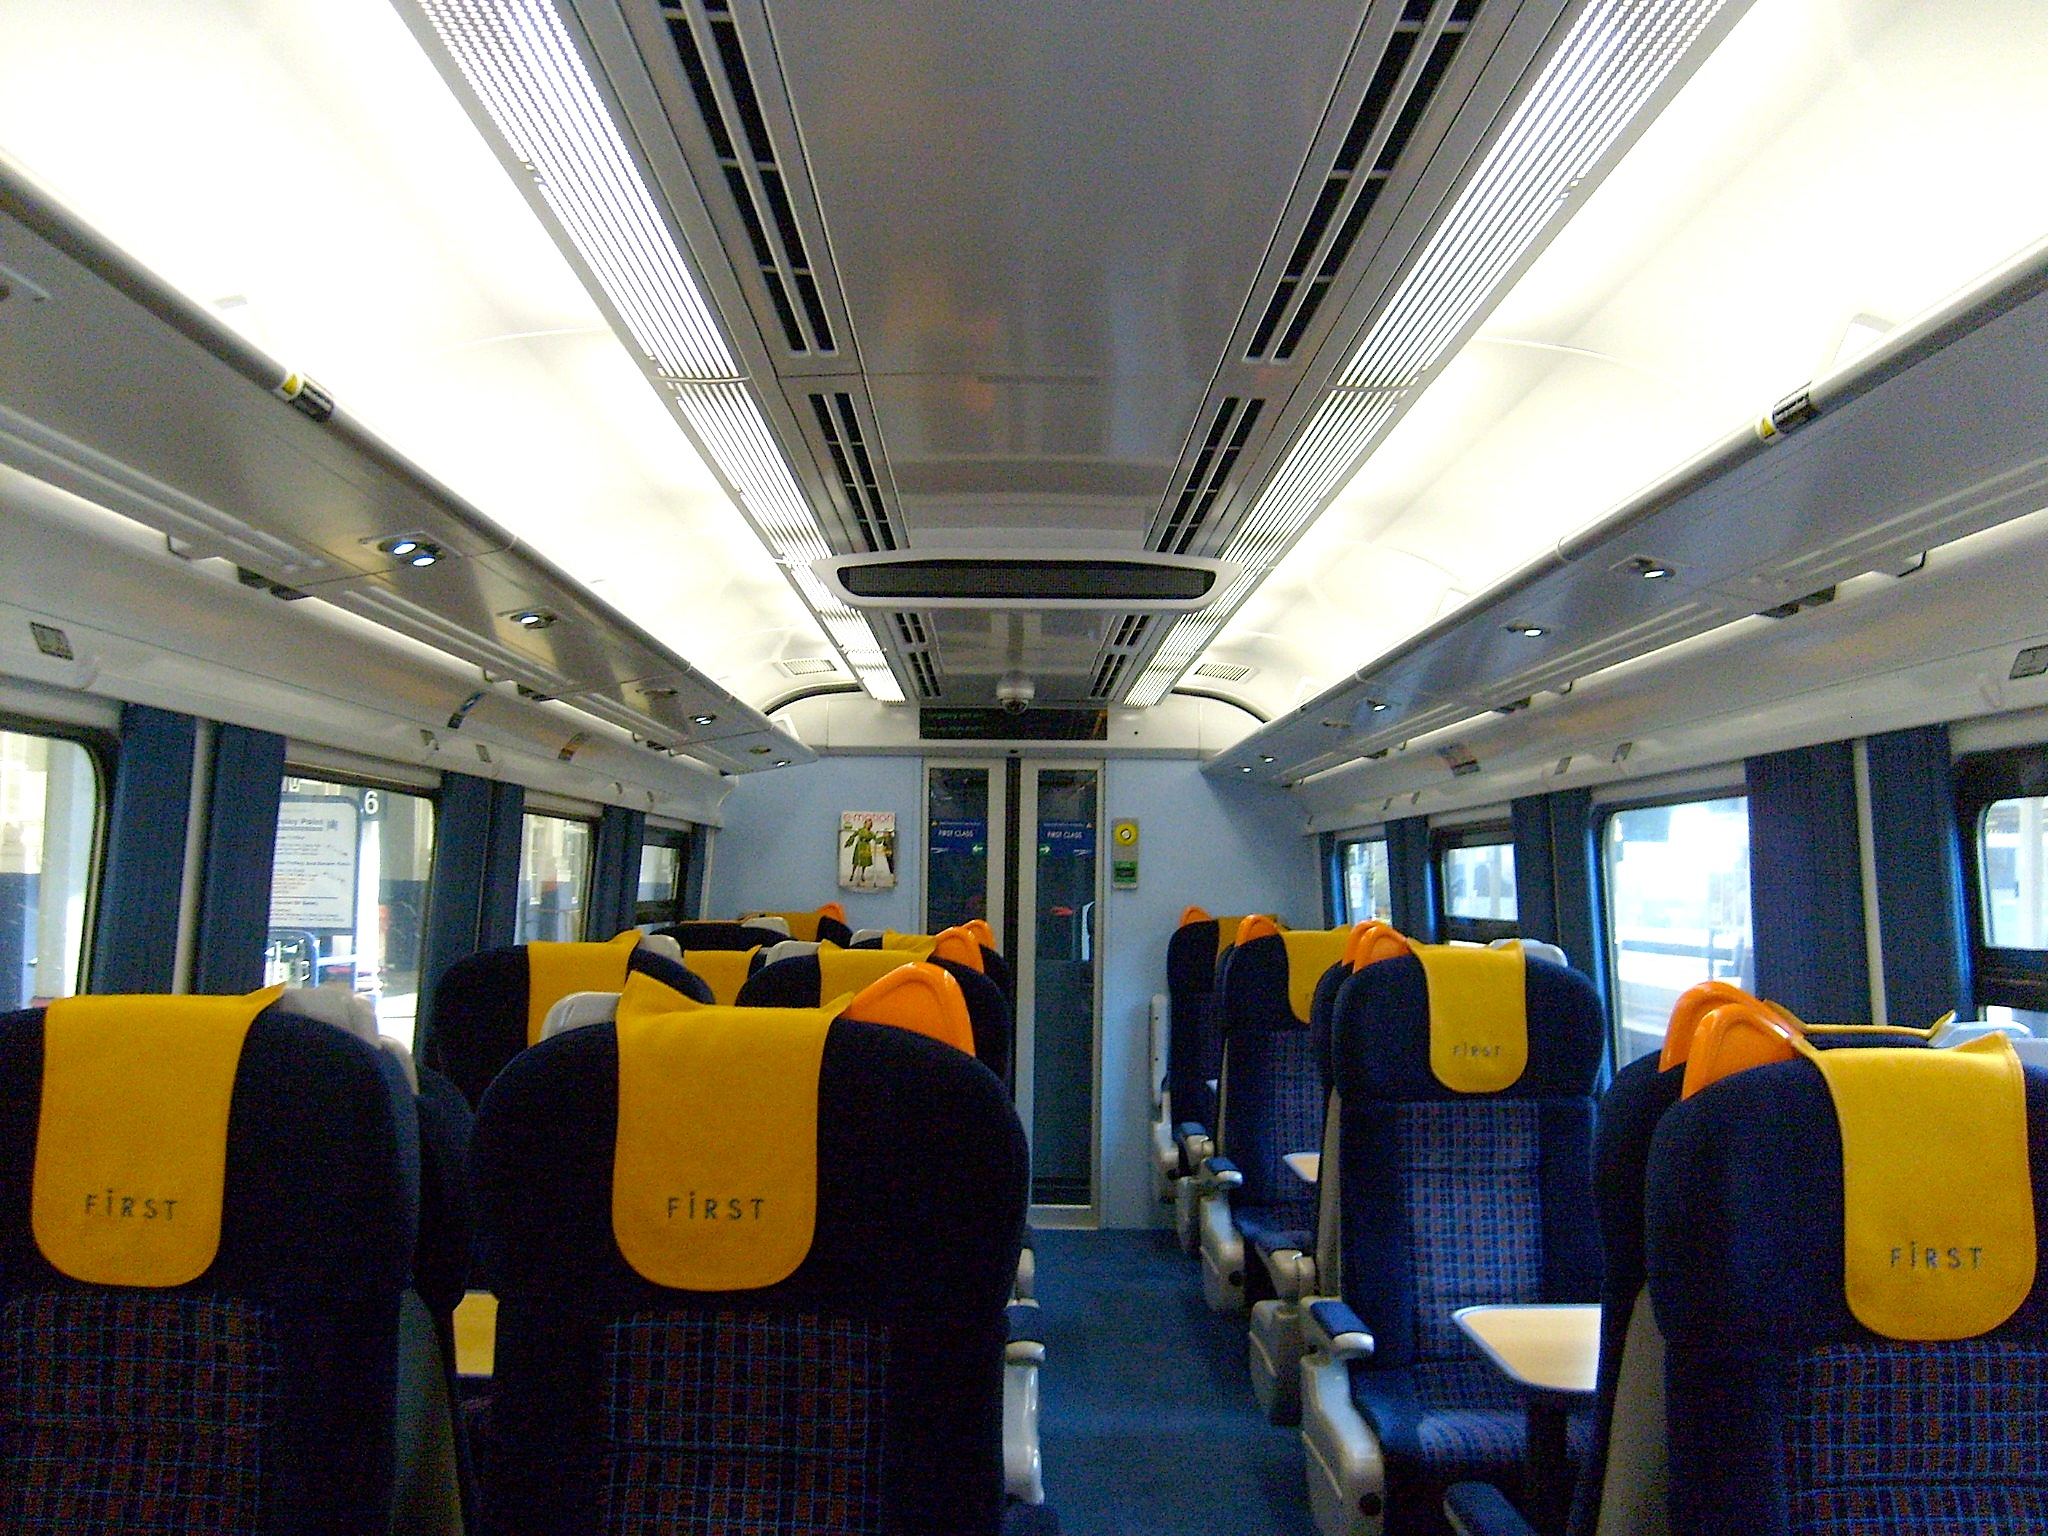 File 159014 B Exeter St Davids Dmco First Class Interior Jpg